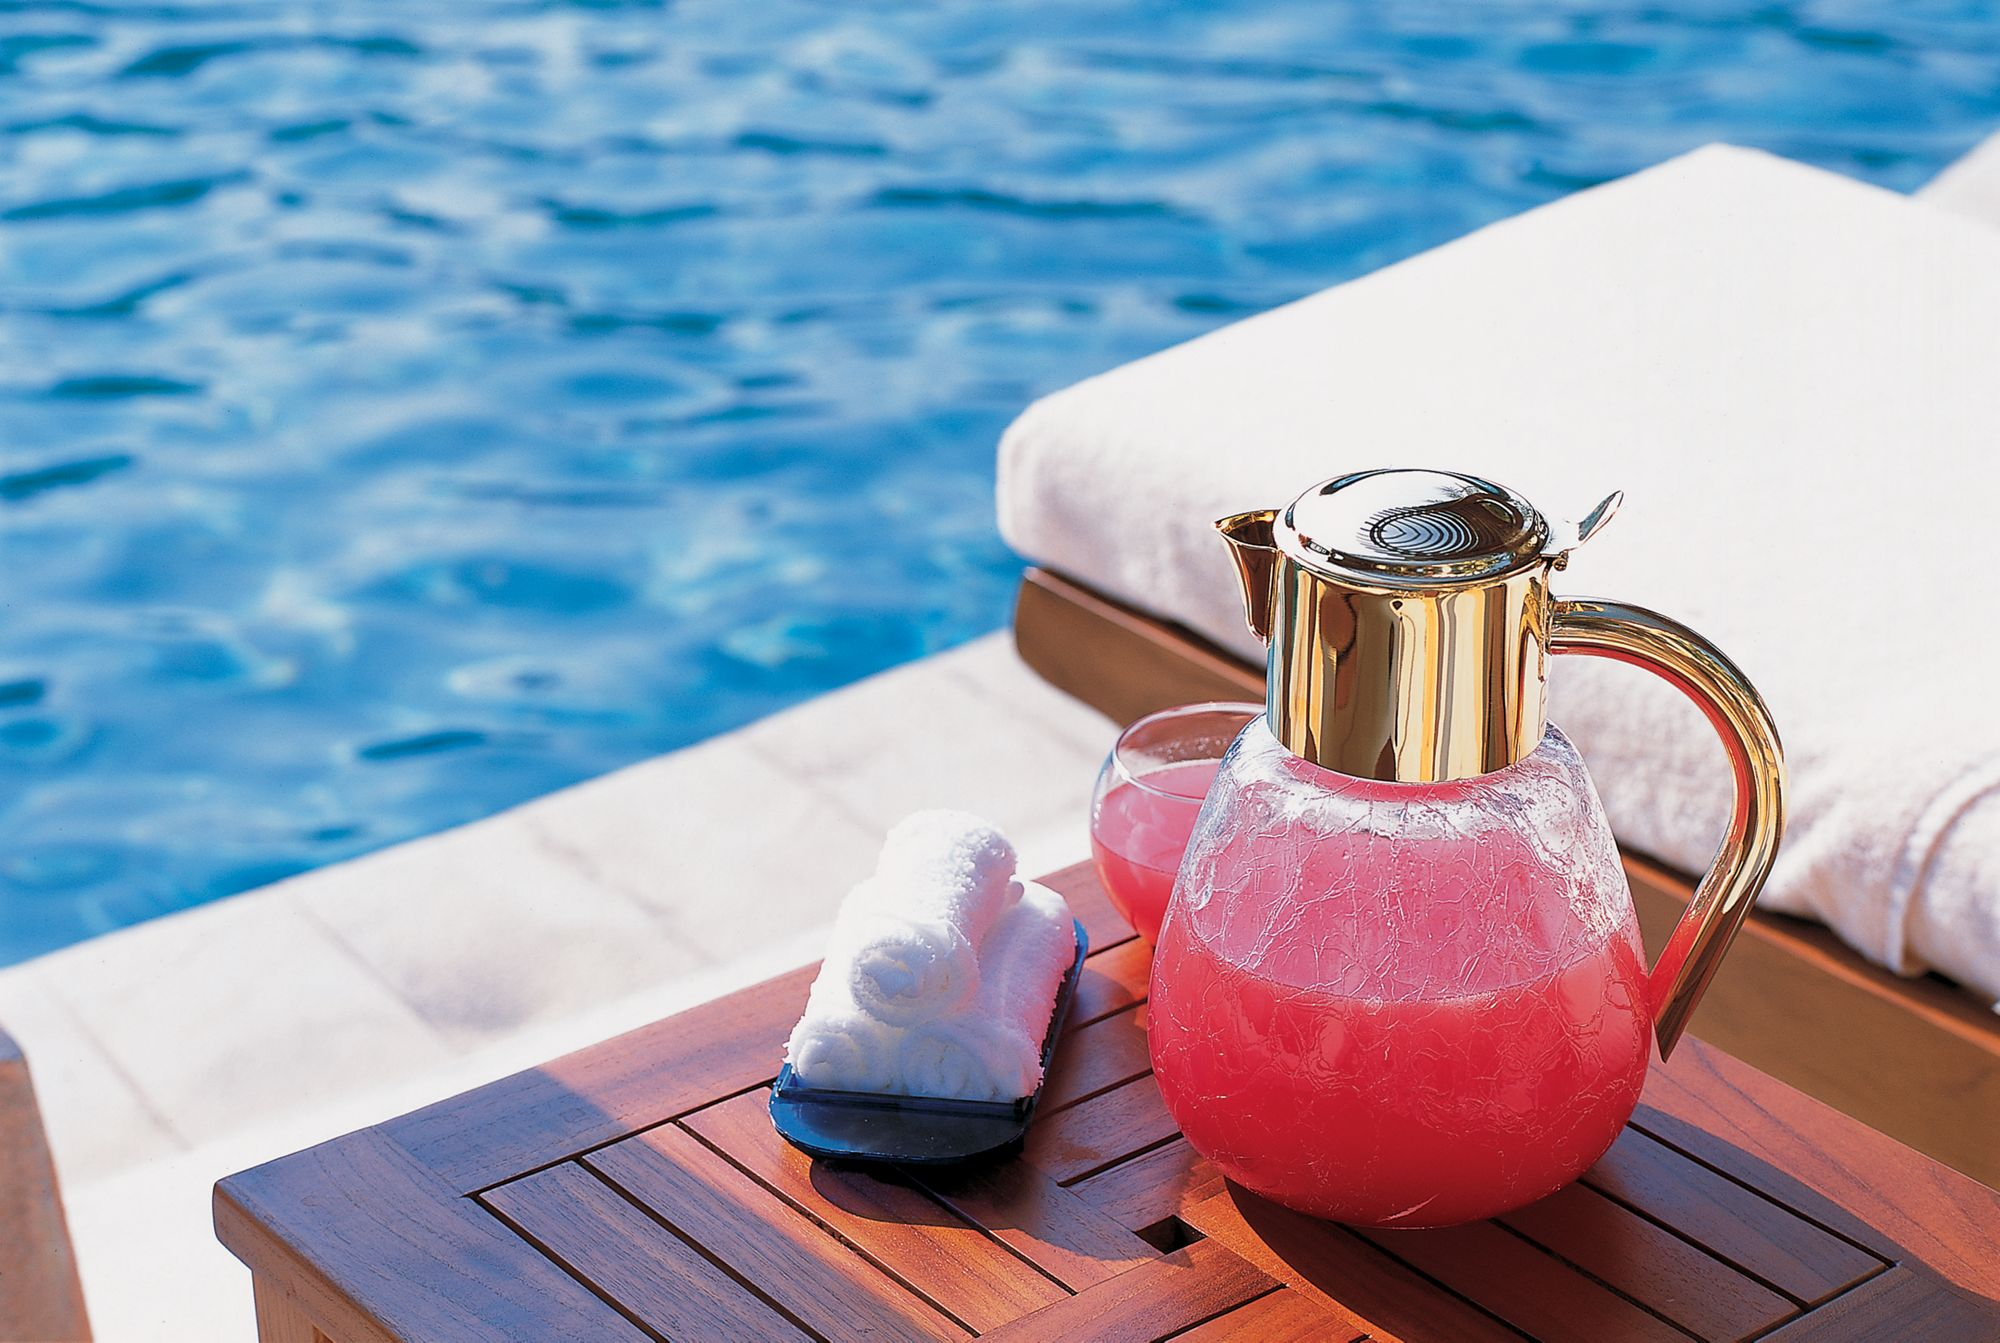 A clear jug of pink juice and three washcloths rest on a table between lounge chairs next to the pool